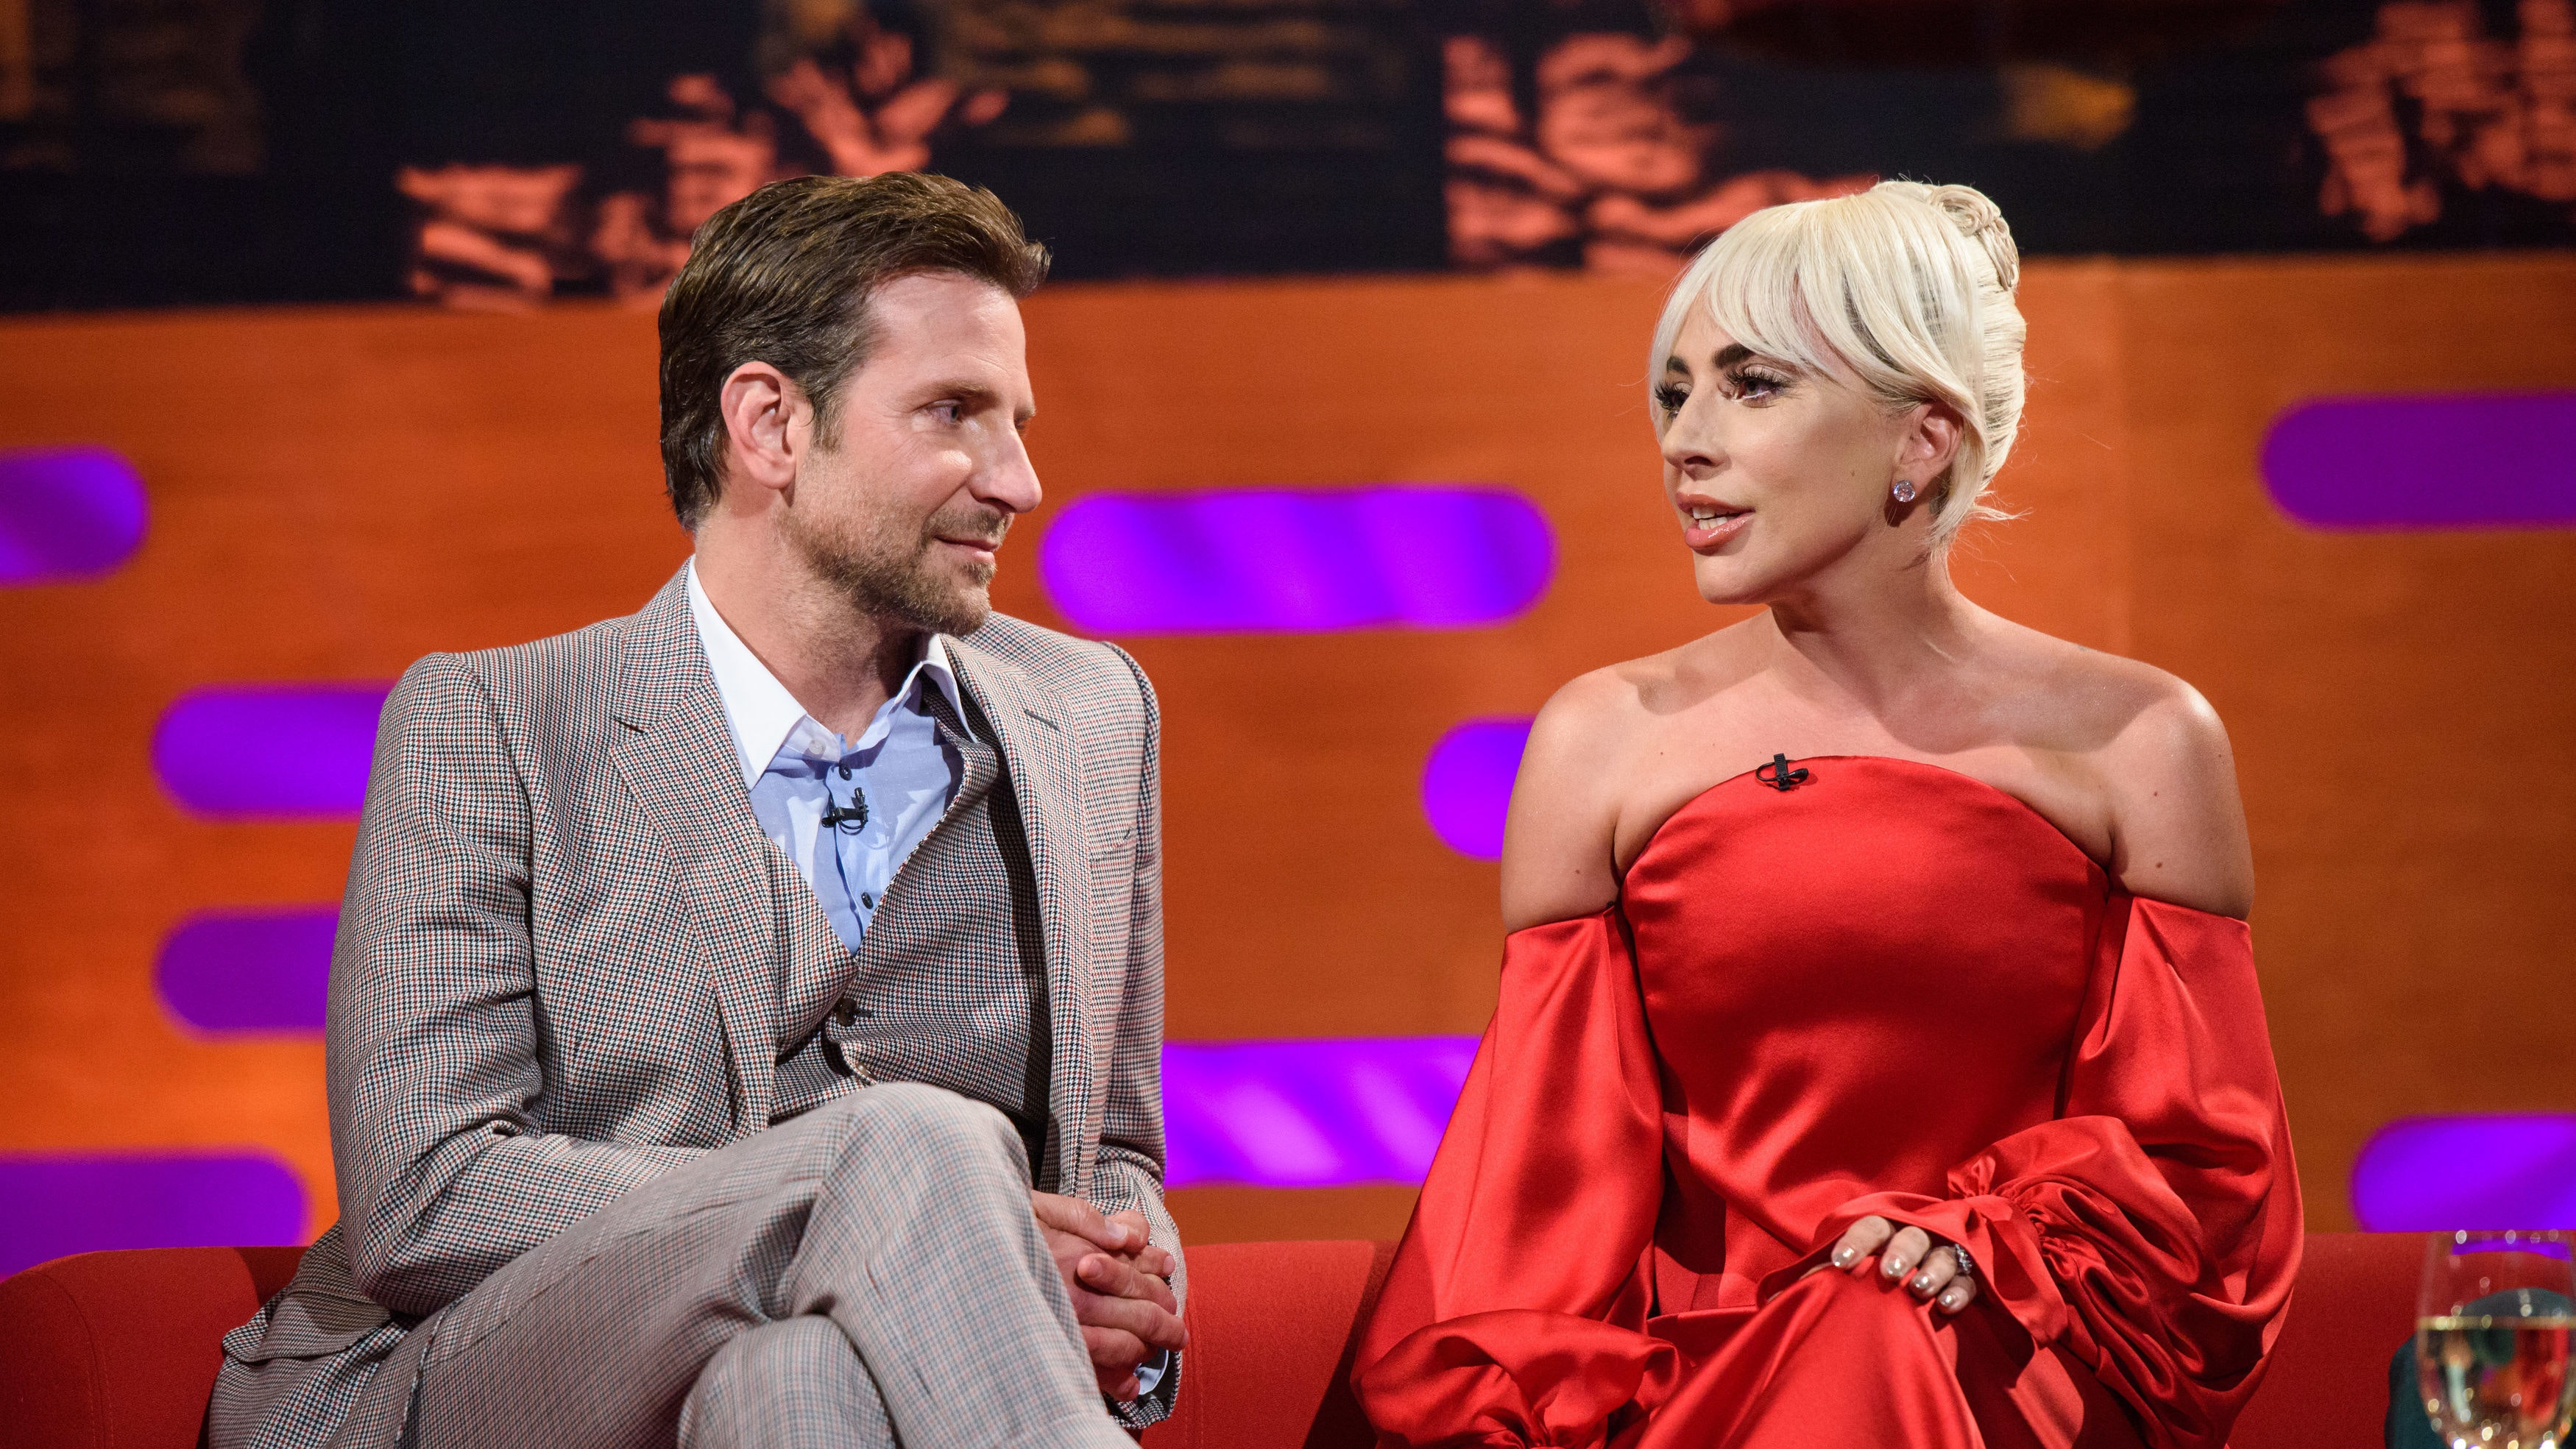 Lady Gaga and Bradley Cooper sing Shallow live for the first time